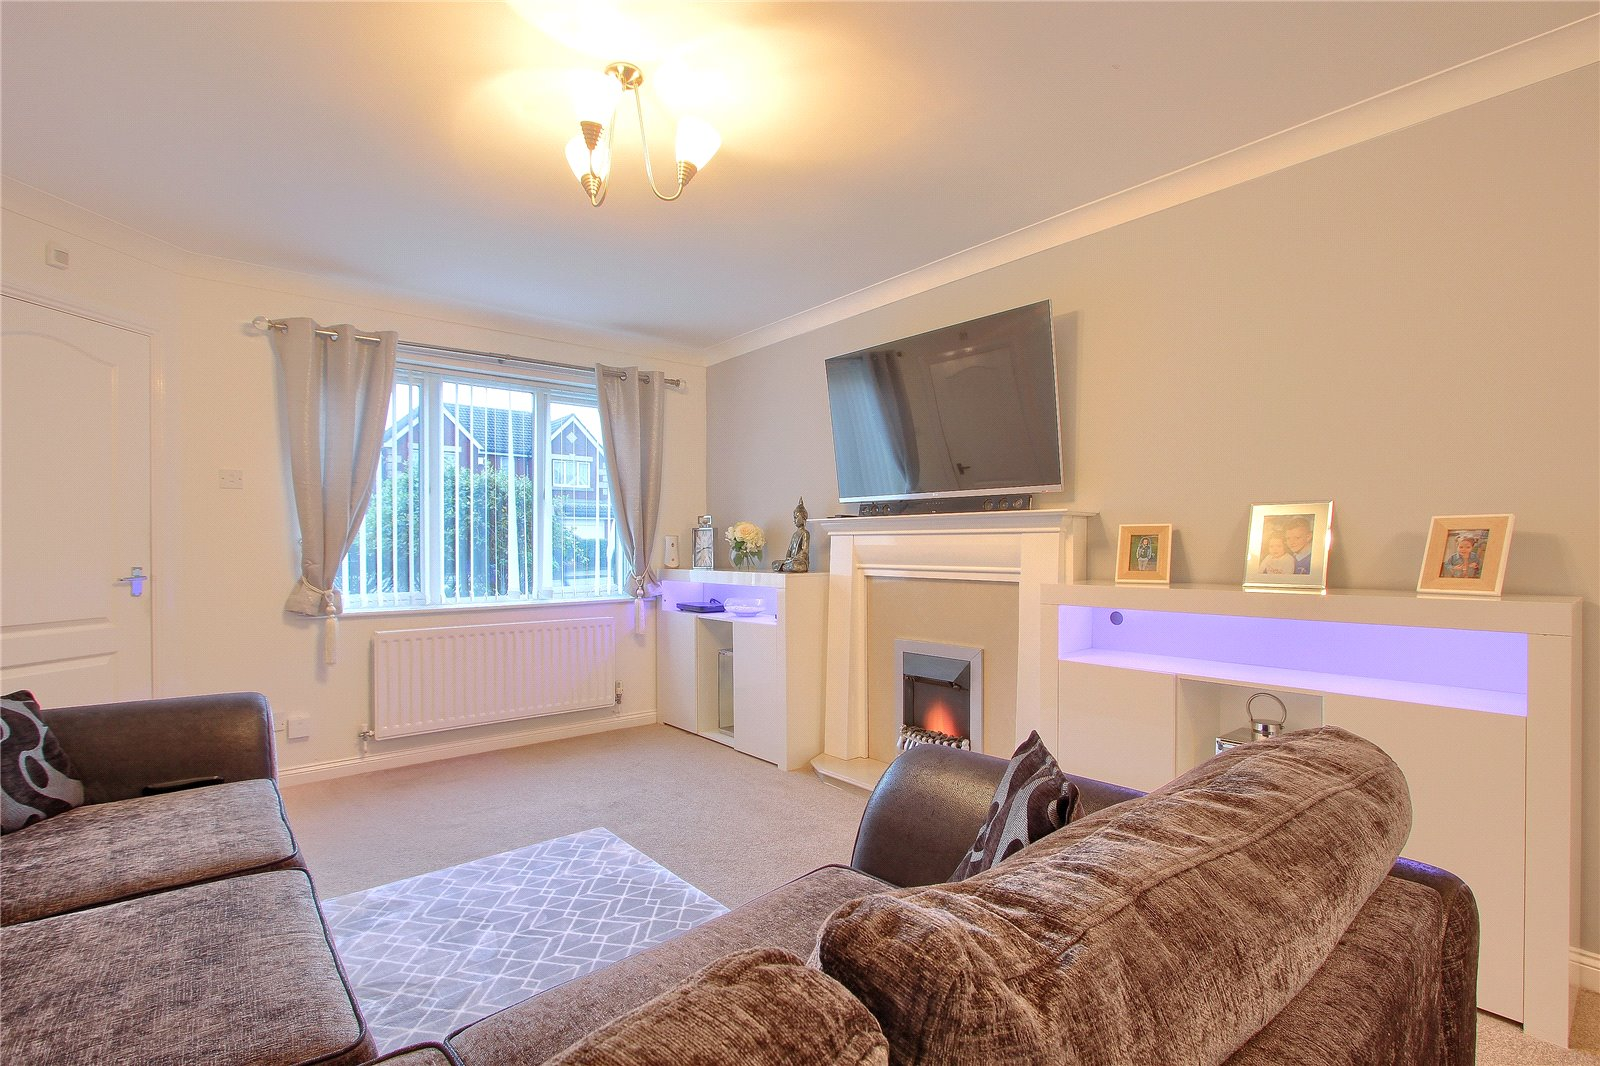 4 bed house for sale in Trevarrian Drive, Redcar 2